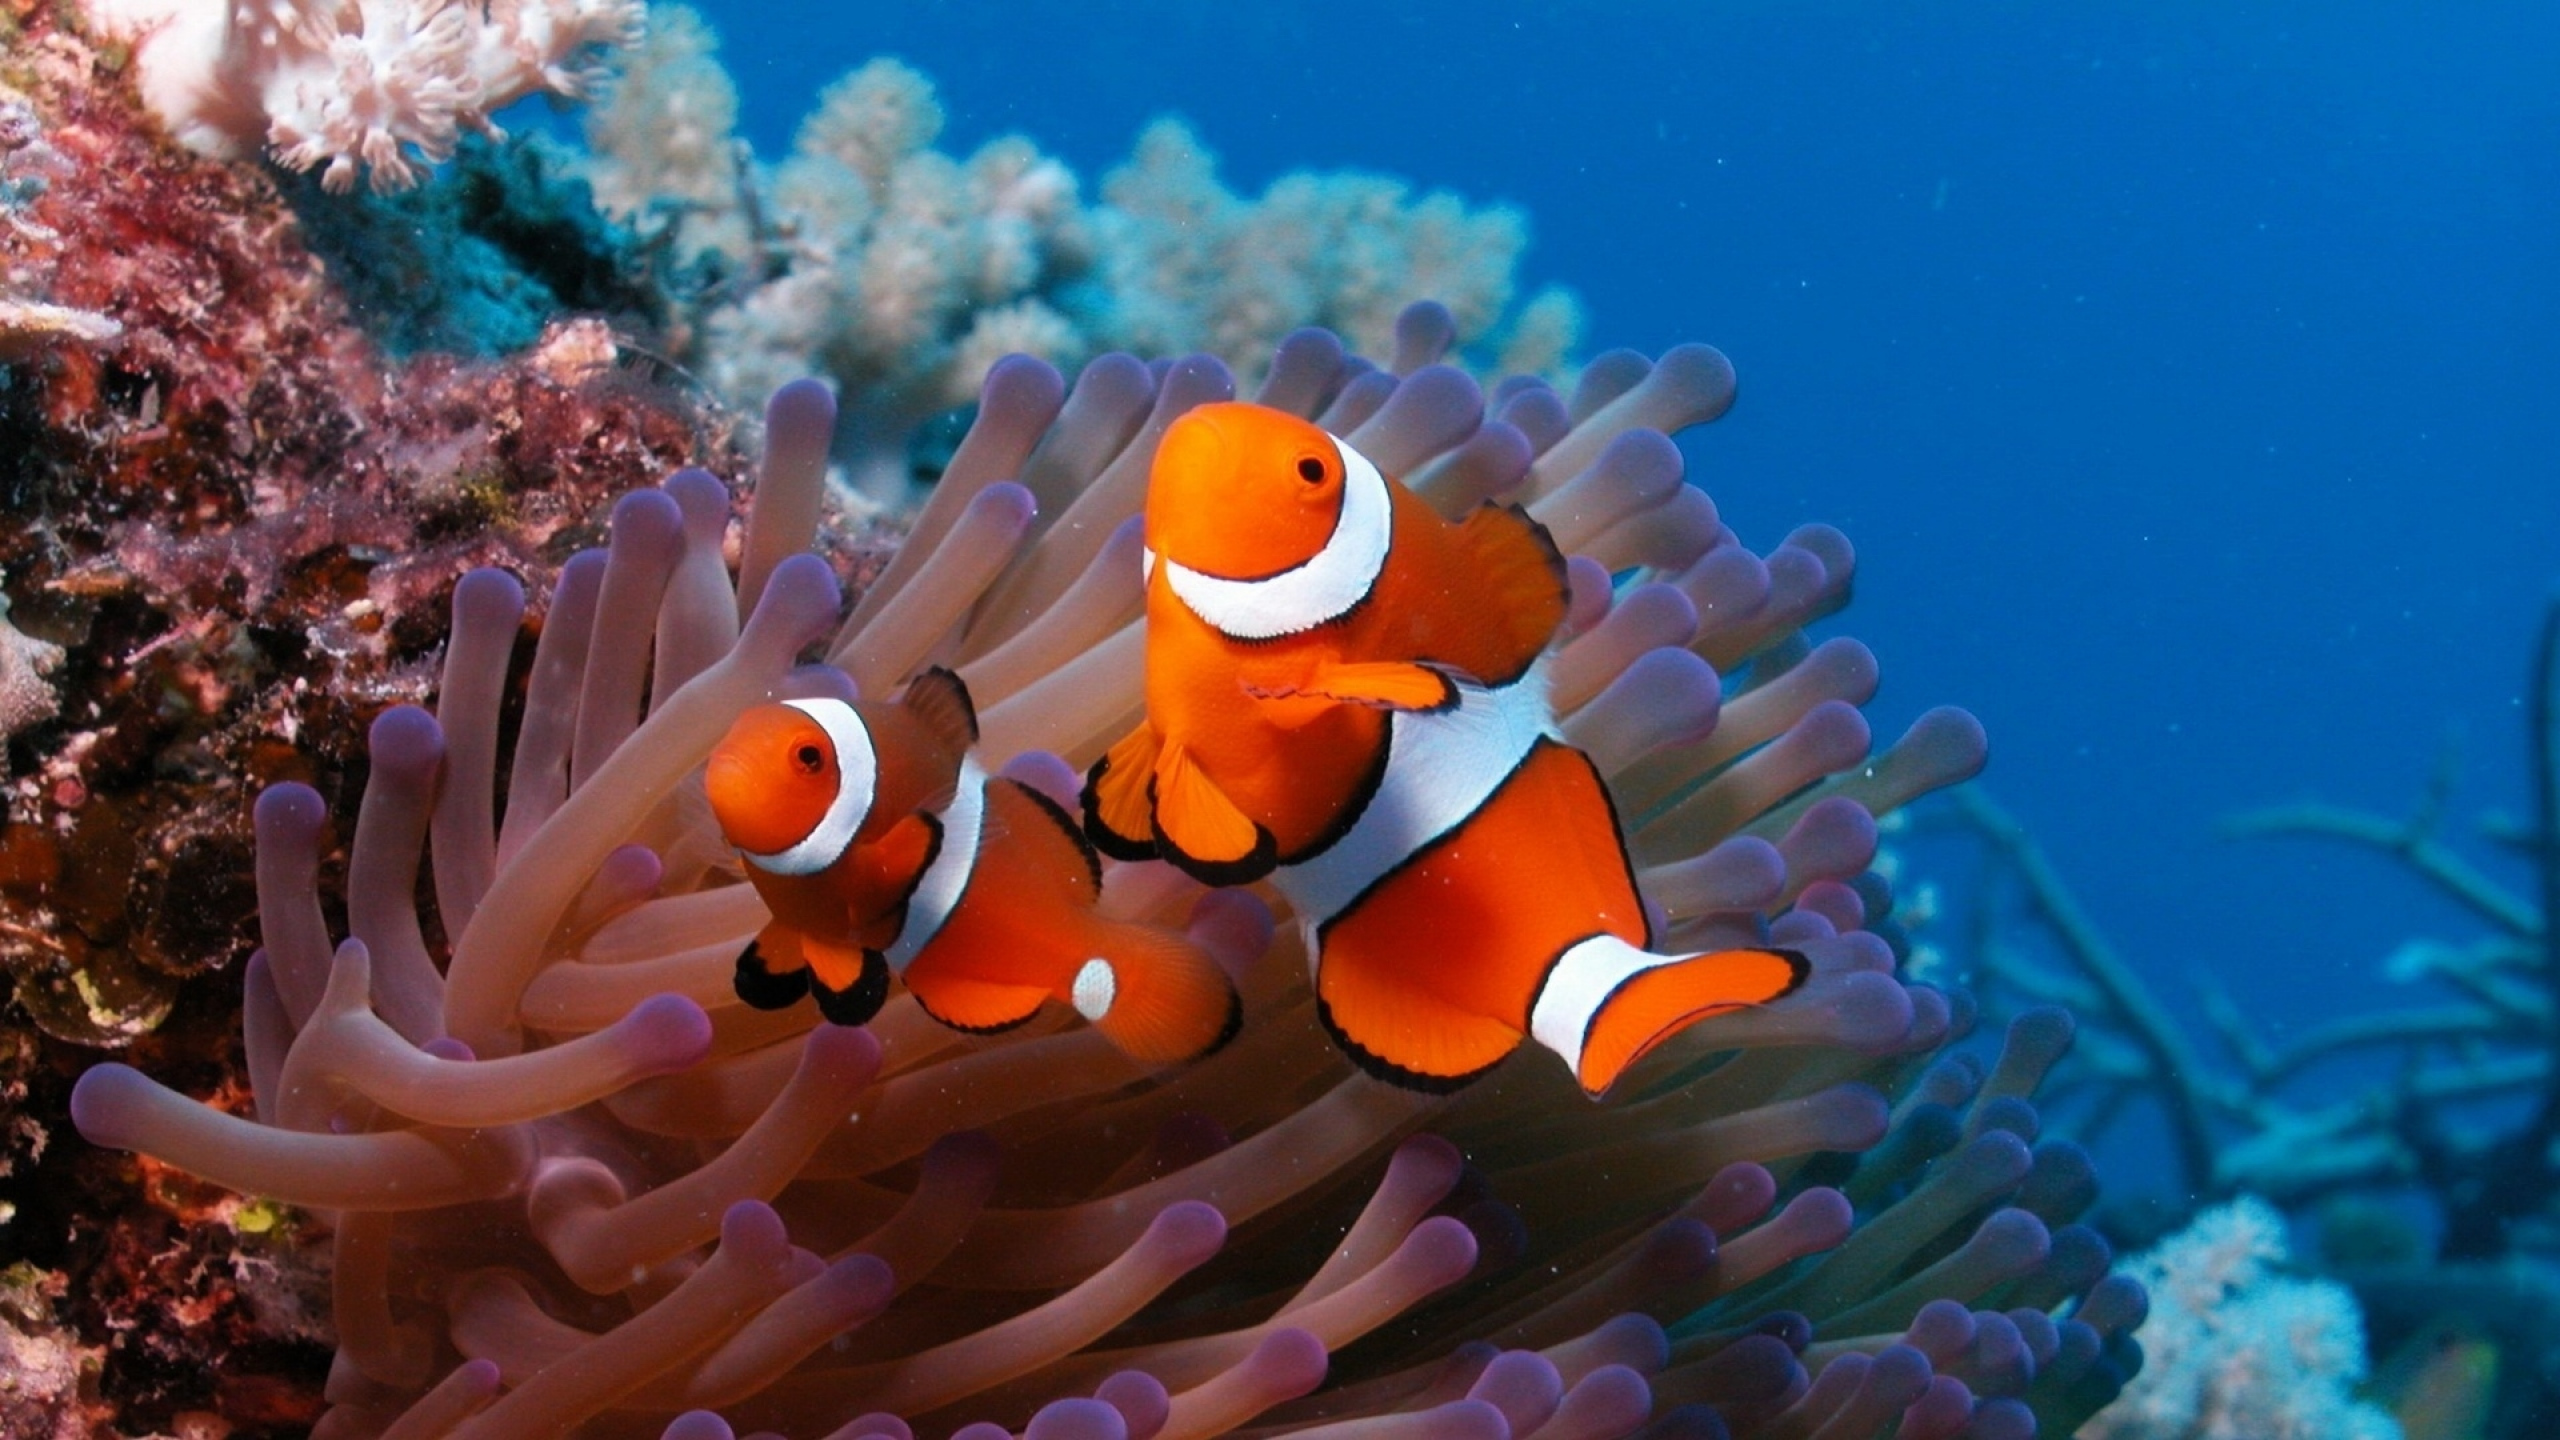 sea_reef_coral_fish_sea_anemones_clown_72850_2560x1440